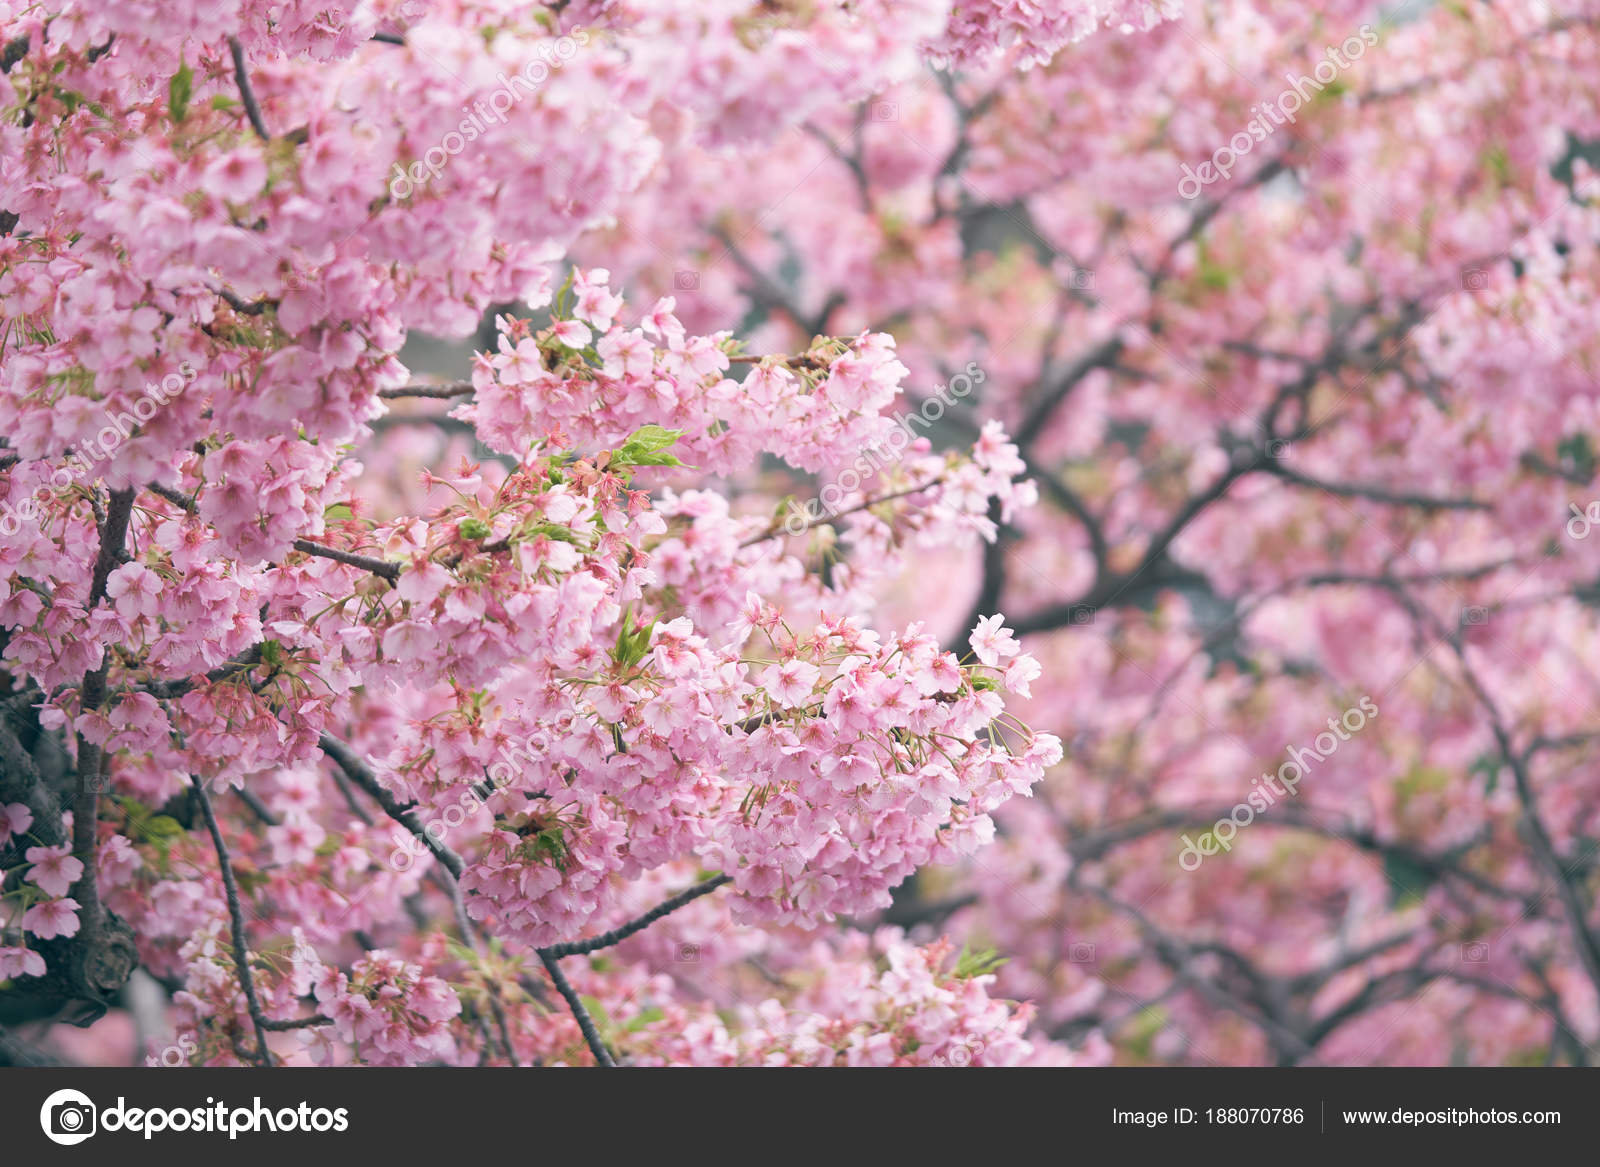 Pink Cherry Blossom Cherry Blossom Japanese Flowering Cherry Sakura